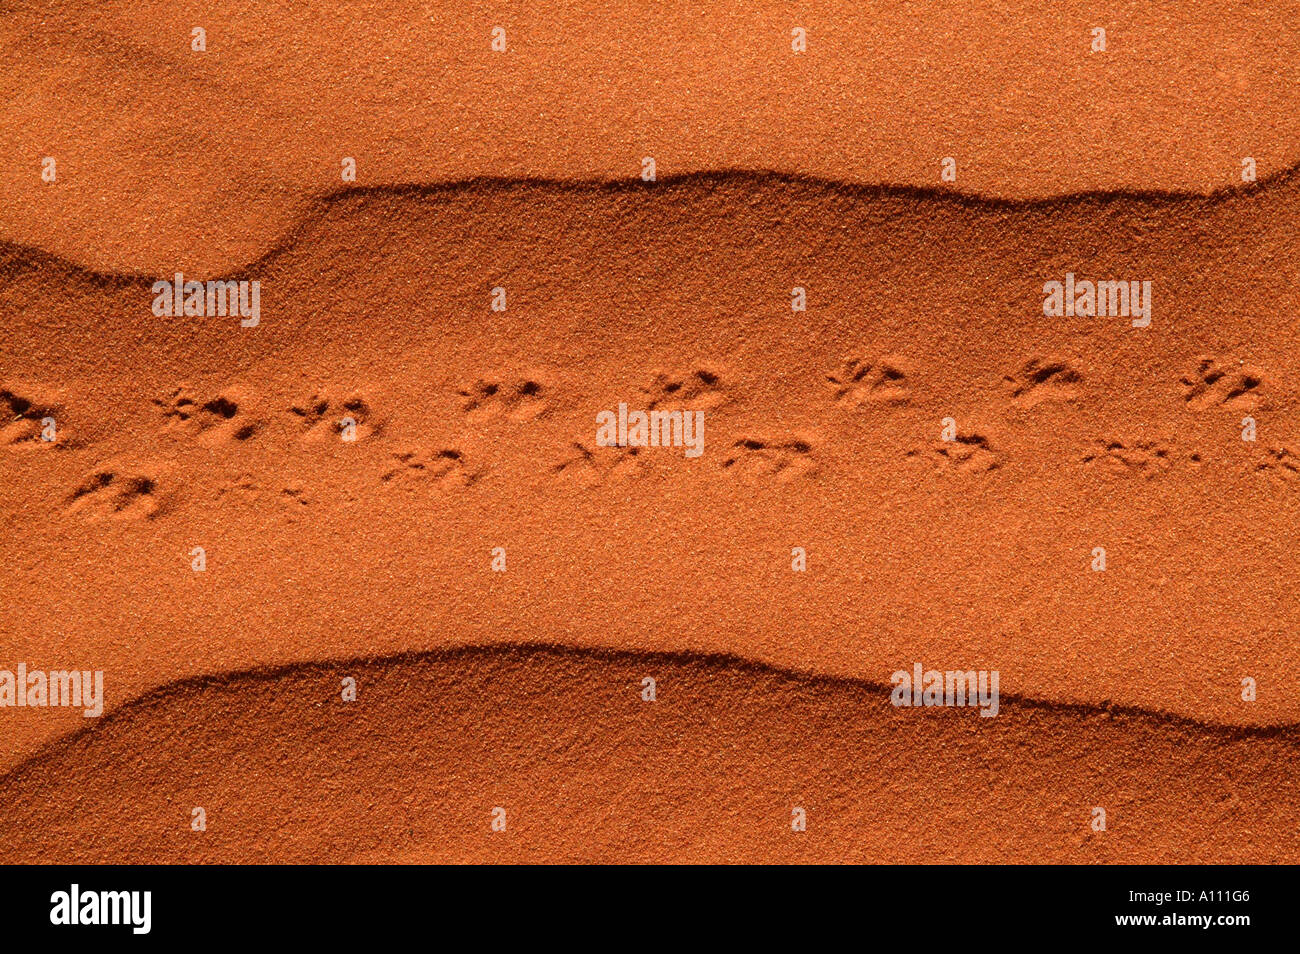 Lizard tracks in red sand dunes, Red Centre near Alice Springs, Northern Territory, Australia - Stock Image